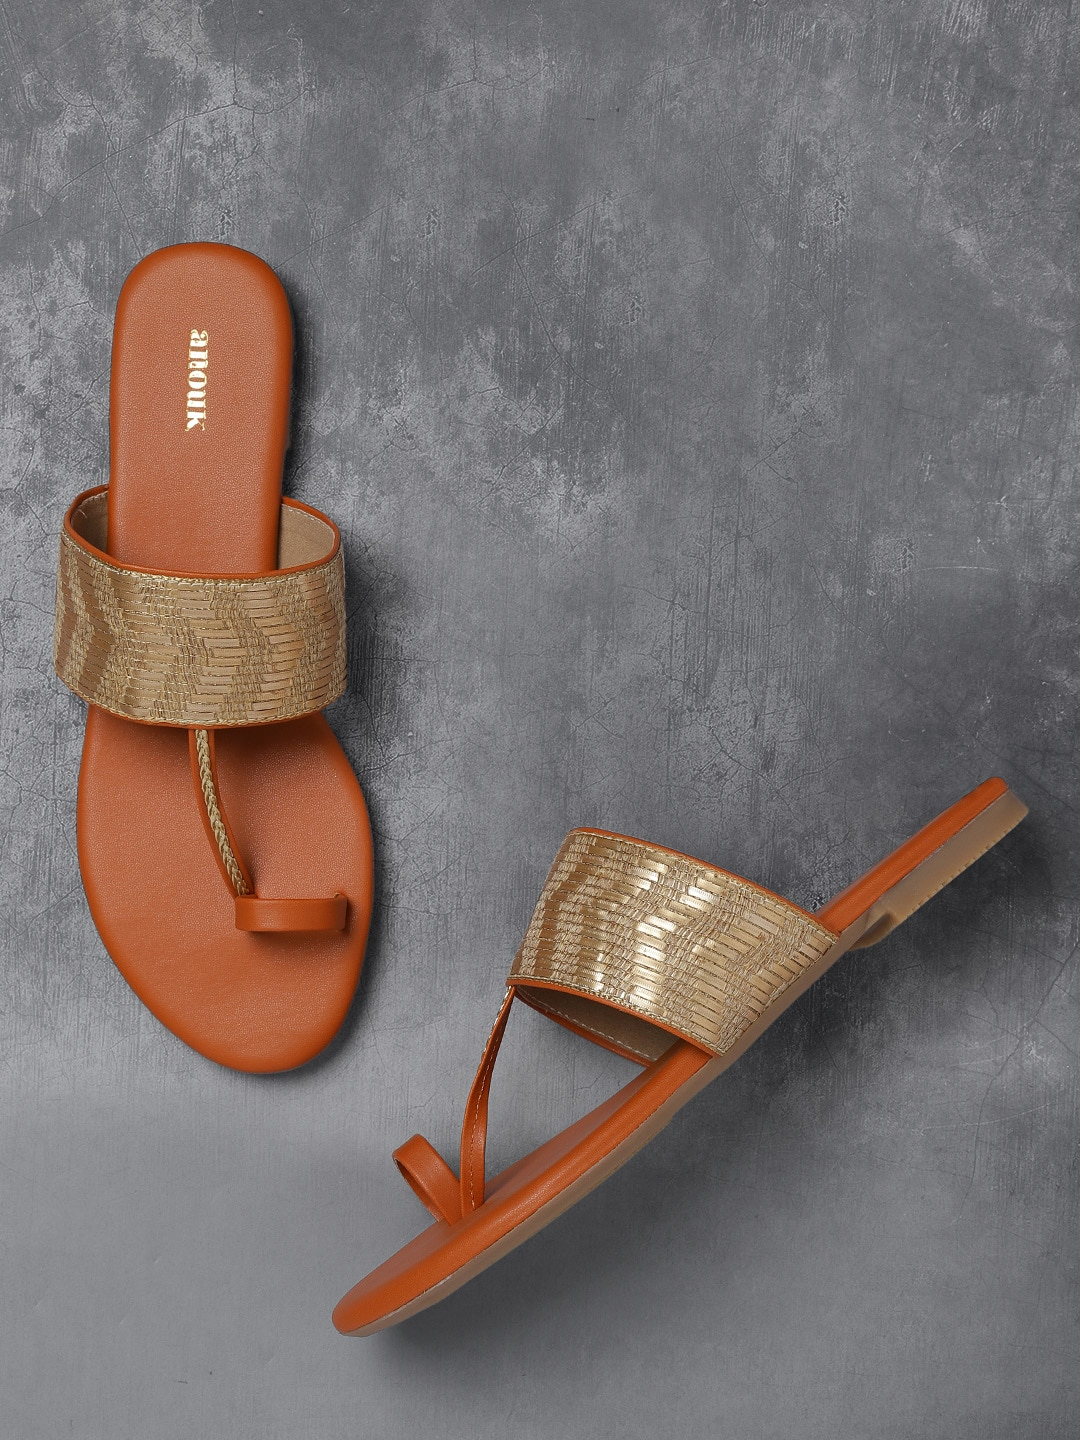 7e9724419 Ladies Sandals - Buy Women Sandals Online in India - Myntra